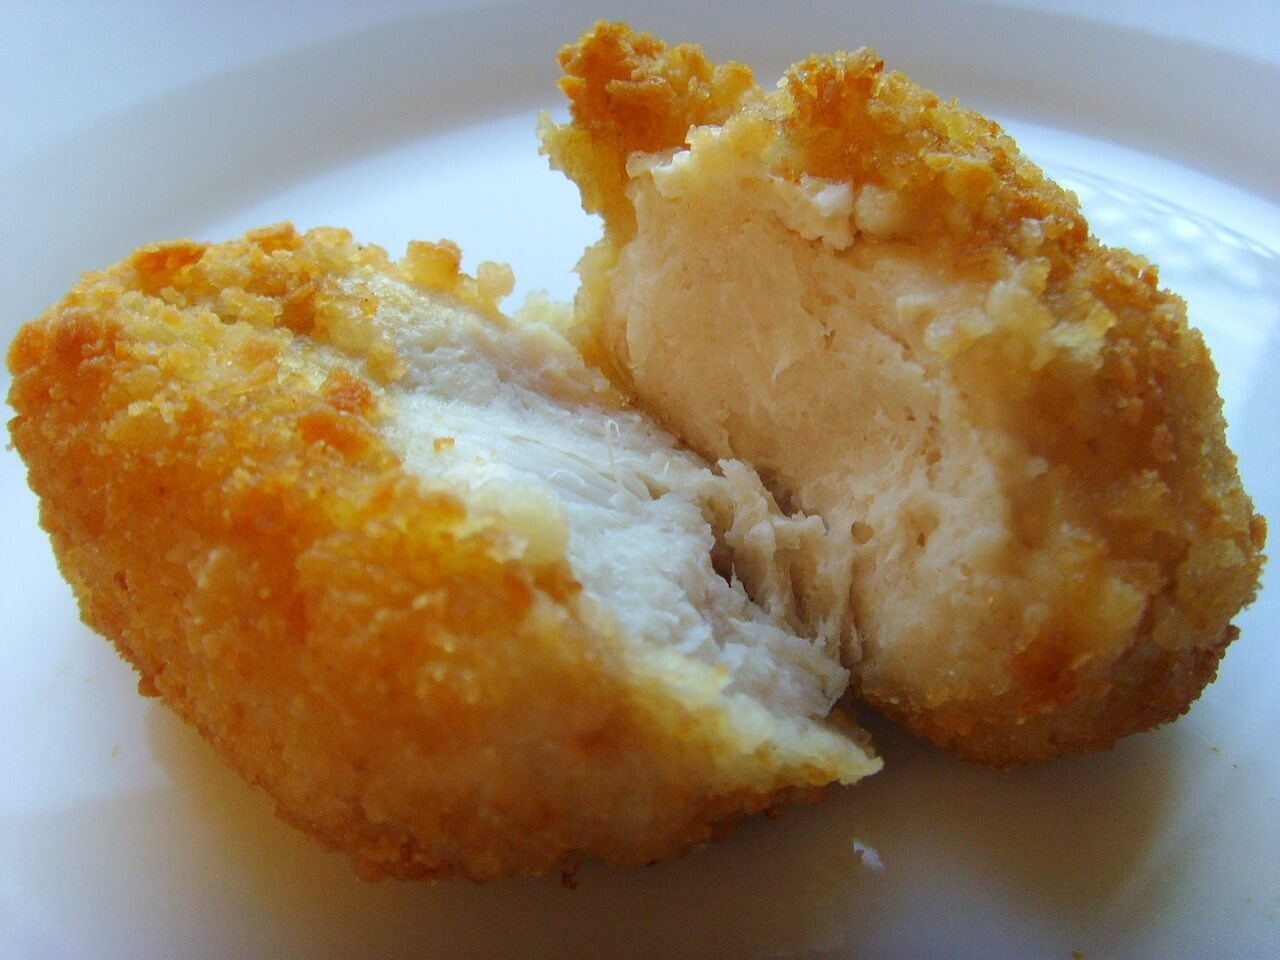 Only Half of A Chicken Nugget Is Made of Chicken Meat